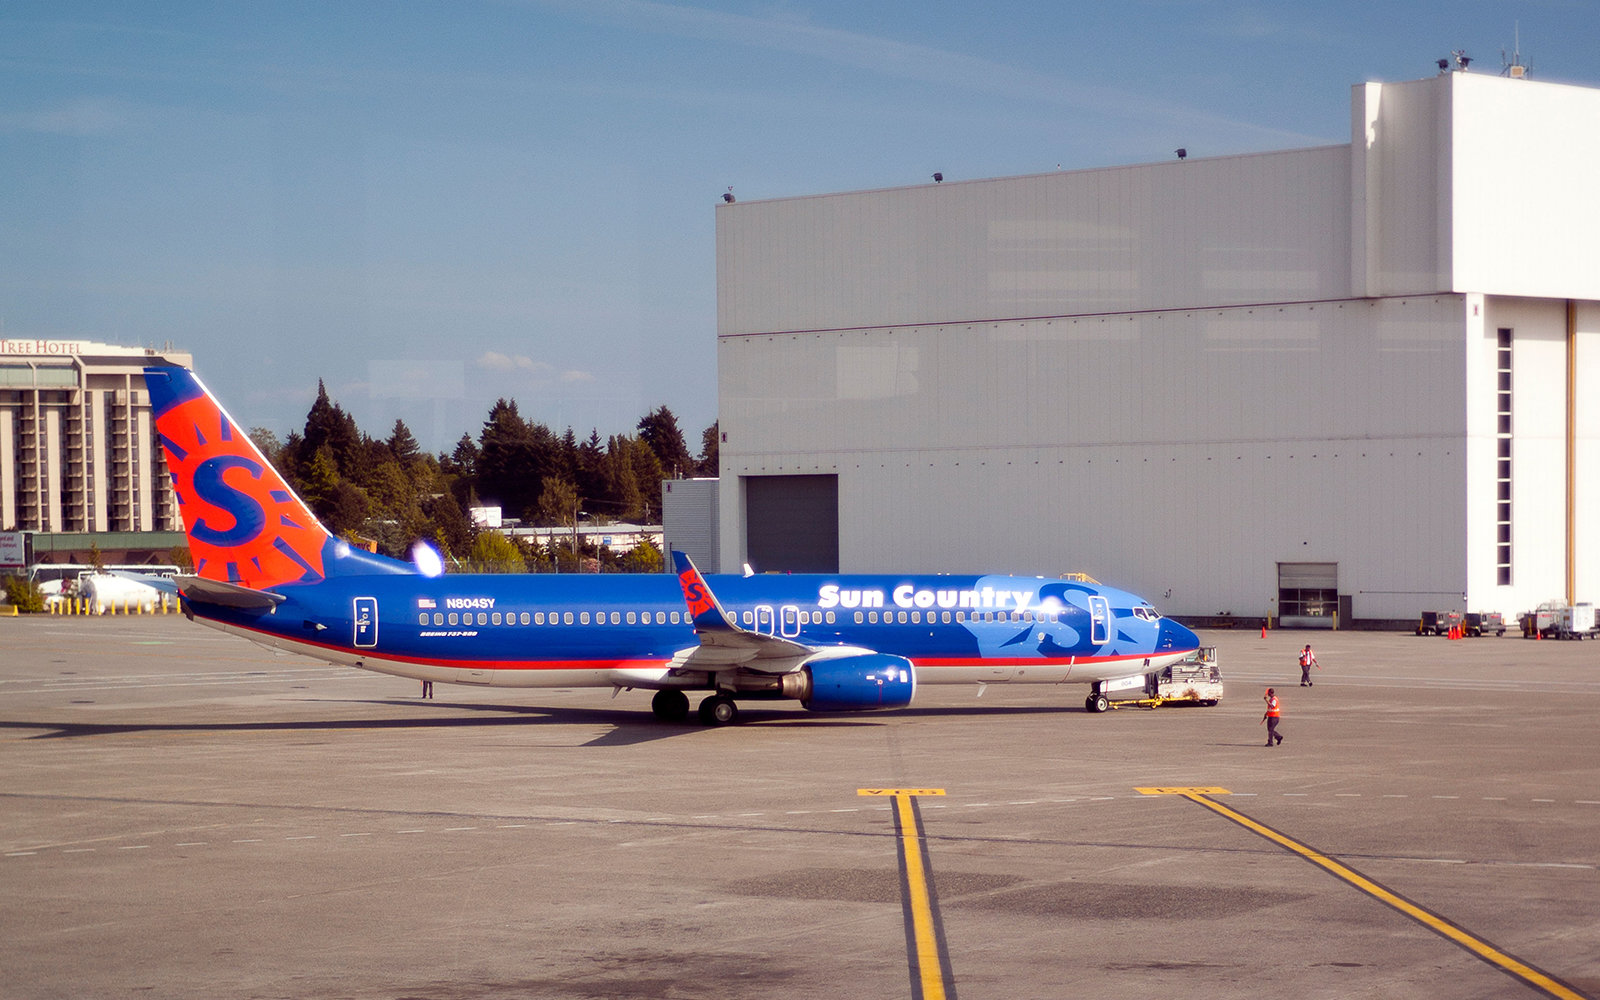 Boeing 737 at Sea-Tac airport in Seattle Washington Sun Country